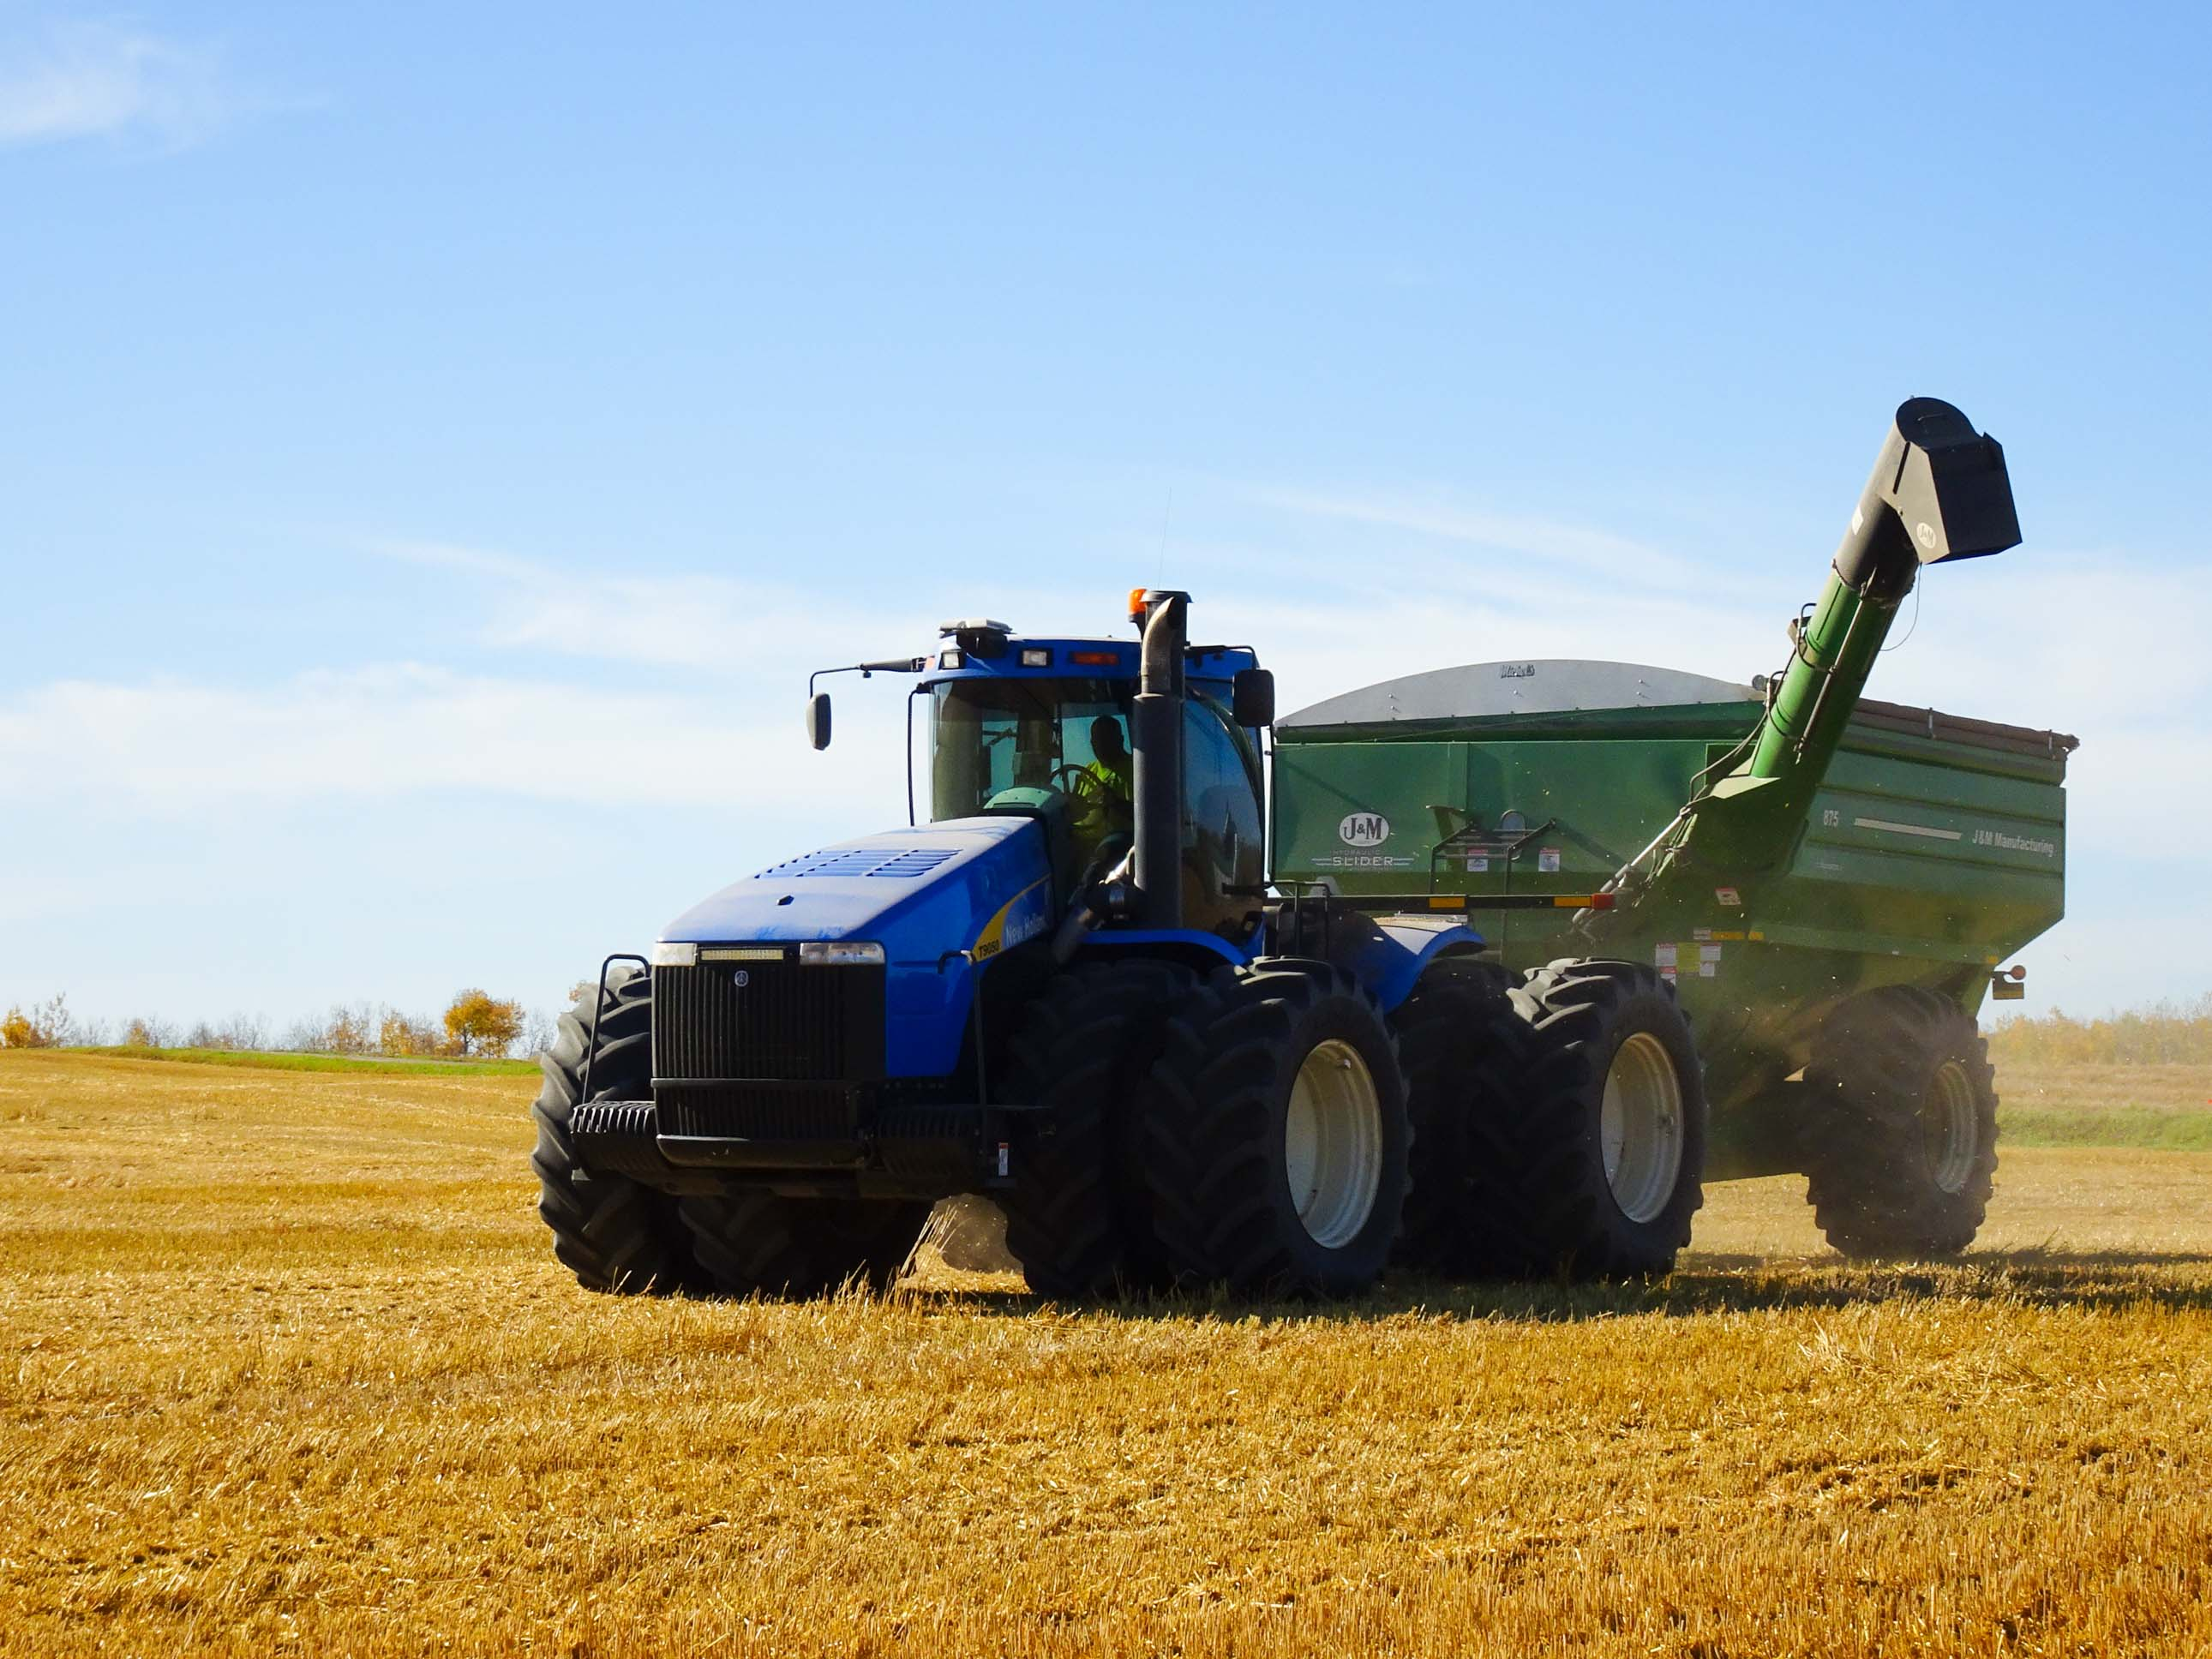 Grain Cart - collects grain from combines then empties into semi